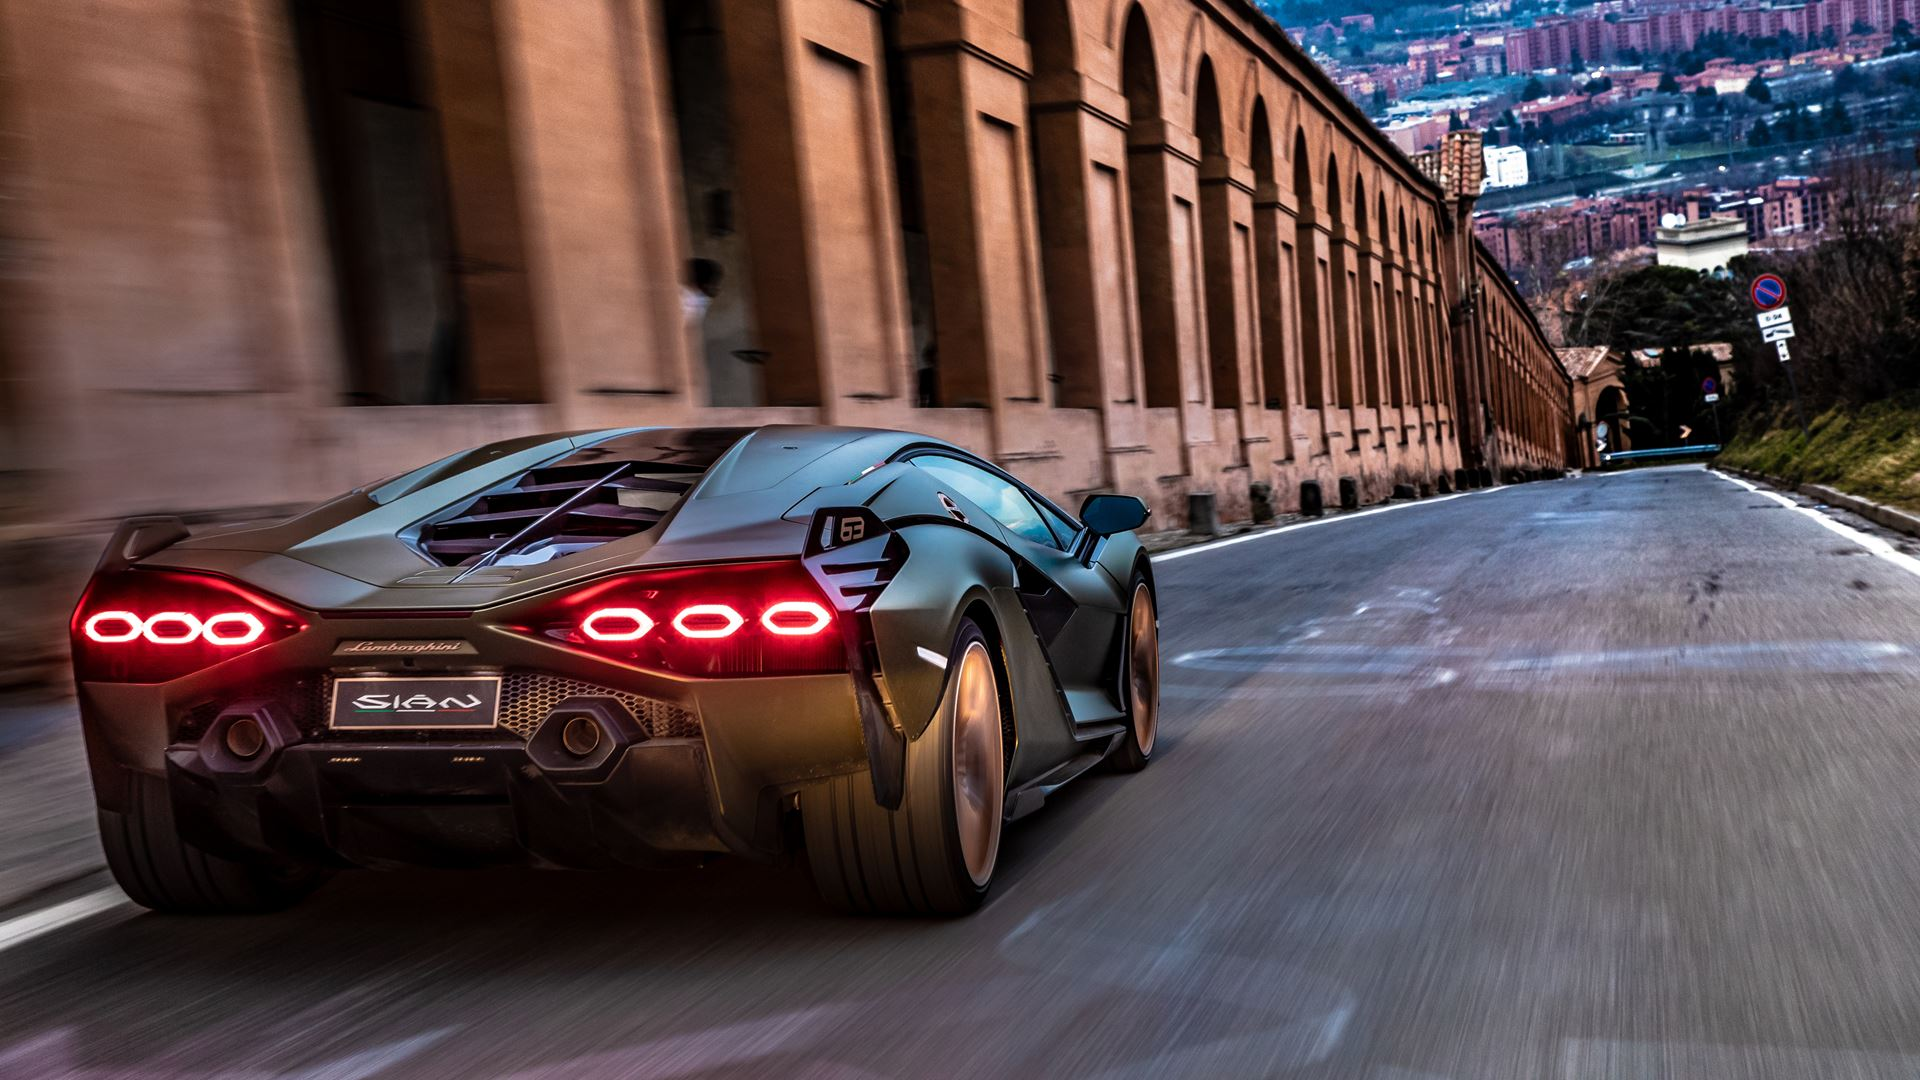 Lamborghini Sián pays homage to the porticoes of Bologna. Following the UNESCO designation, the super sports car from Sant'Agata travels the streets of Bologna's porticoes - Image 2